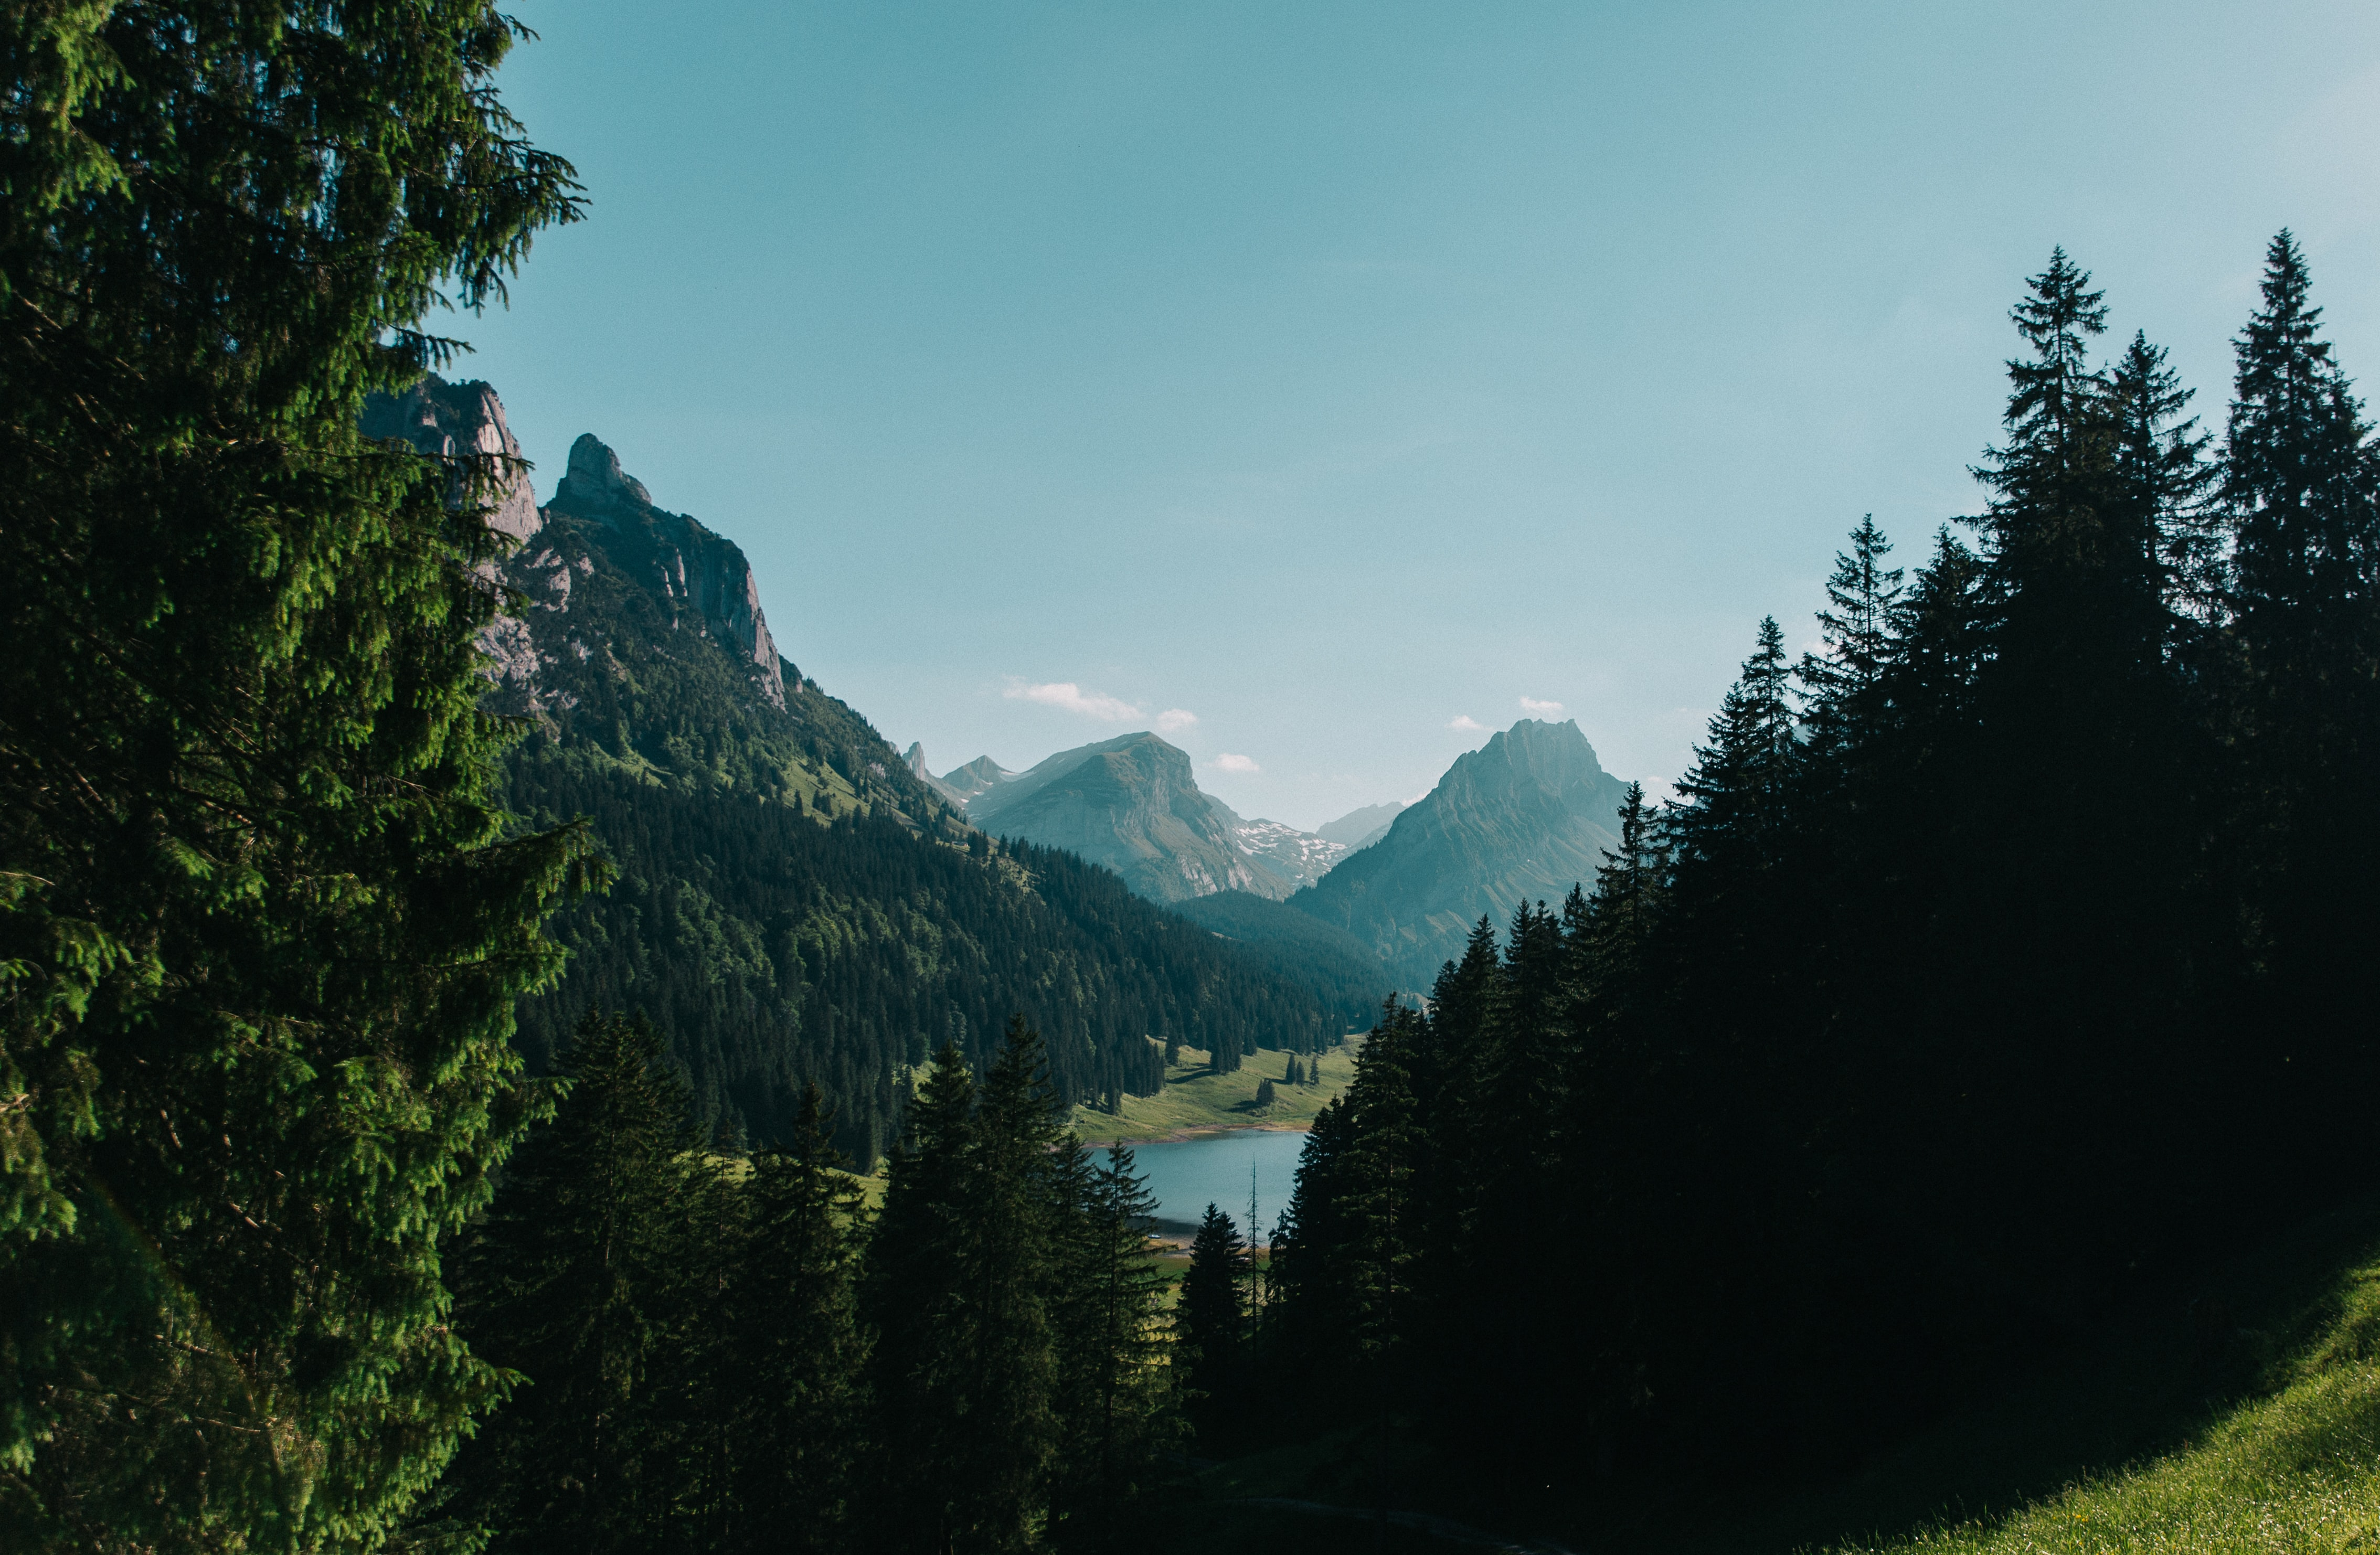 pine trees in front of mountain ranges